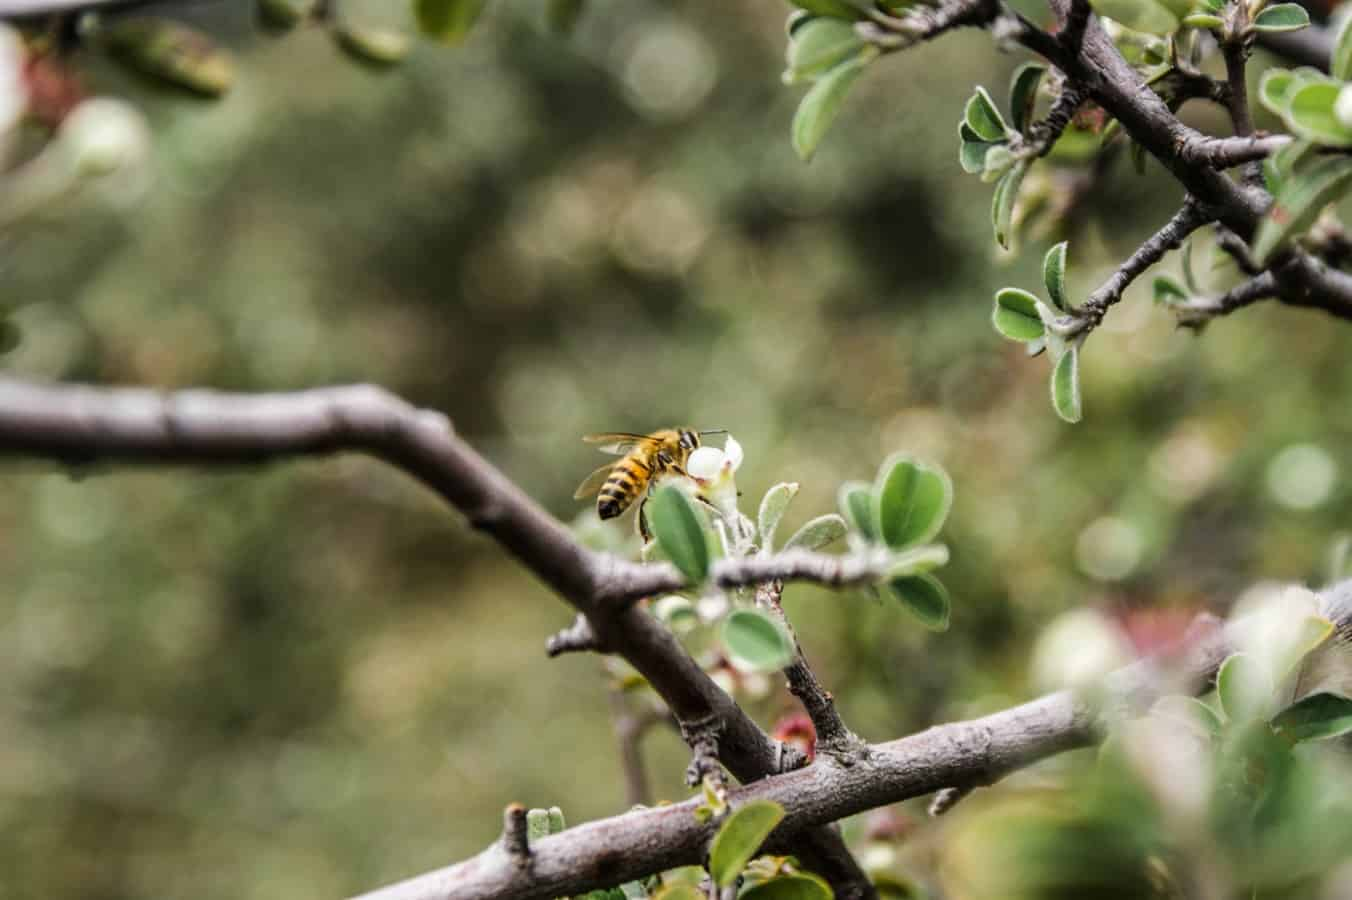 A honey bee flying up to a flower on a tree branch